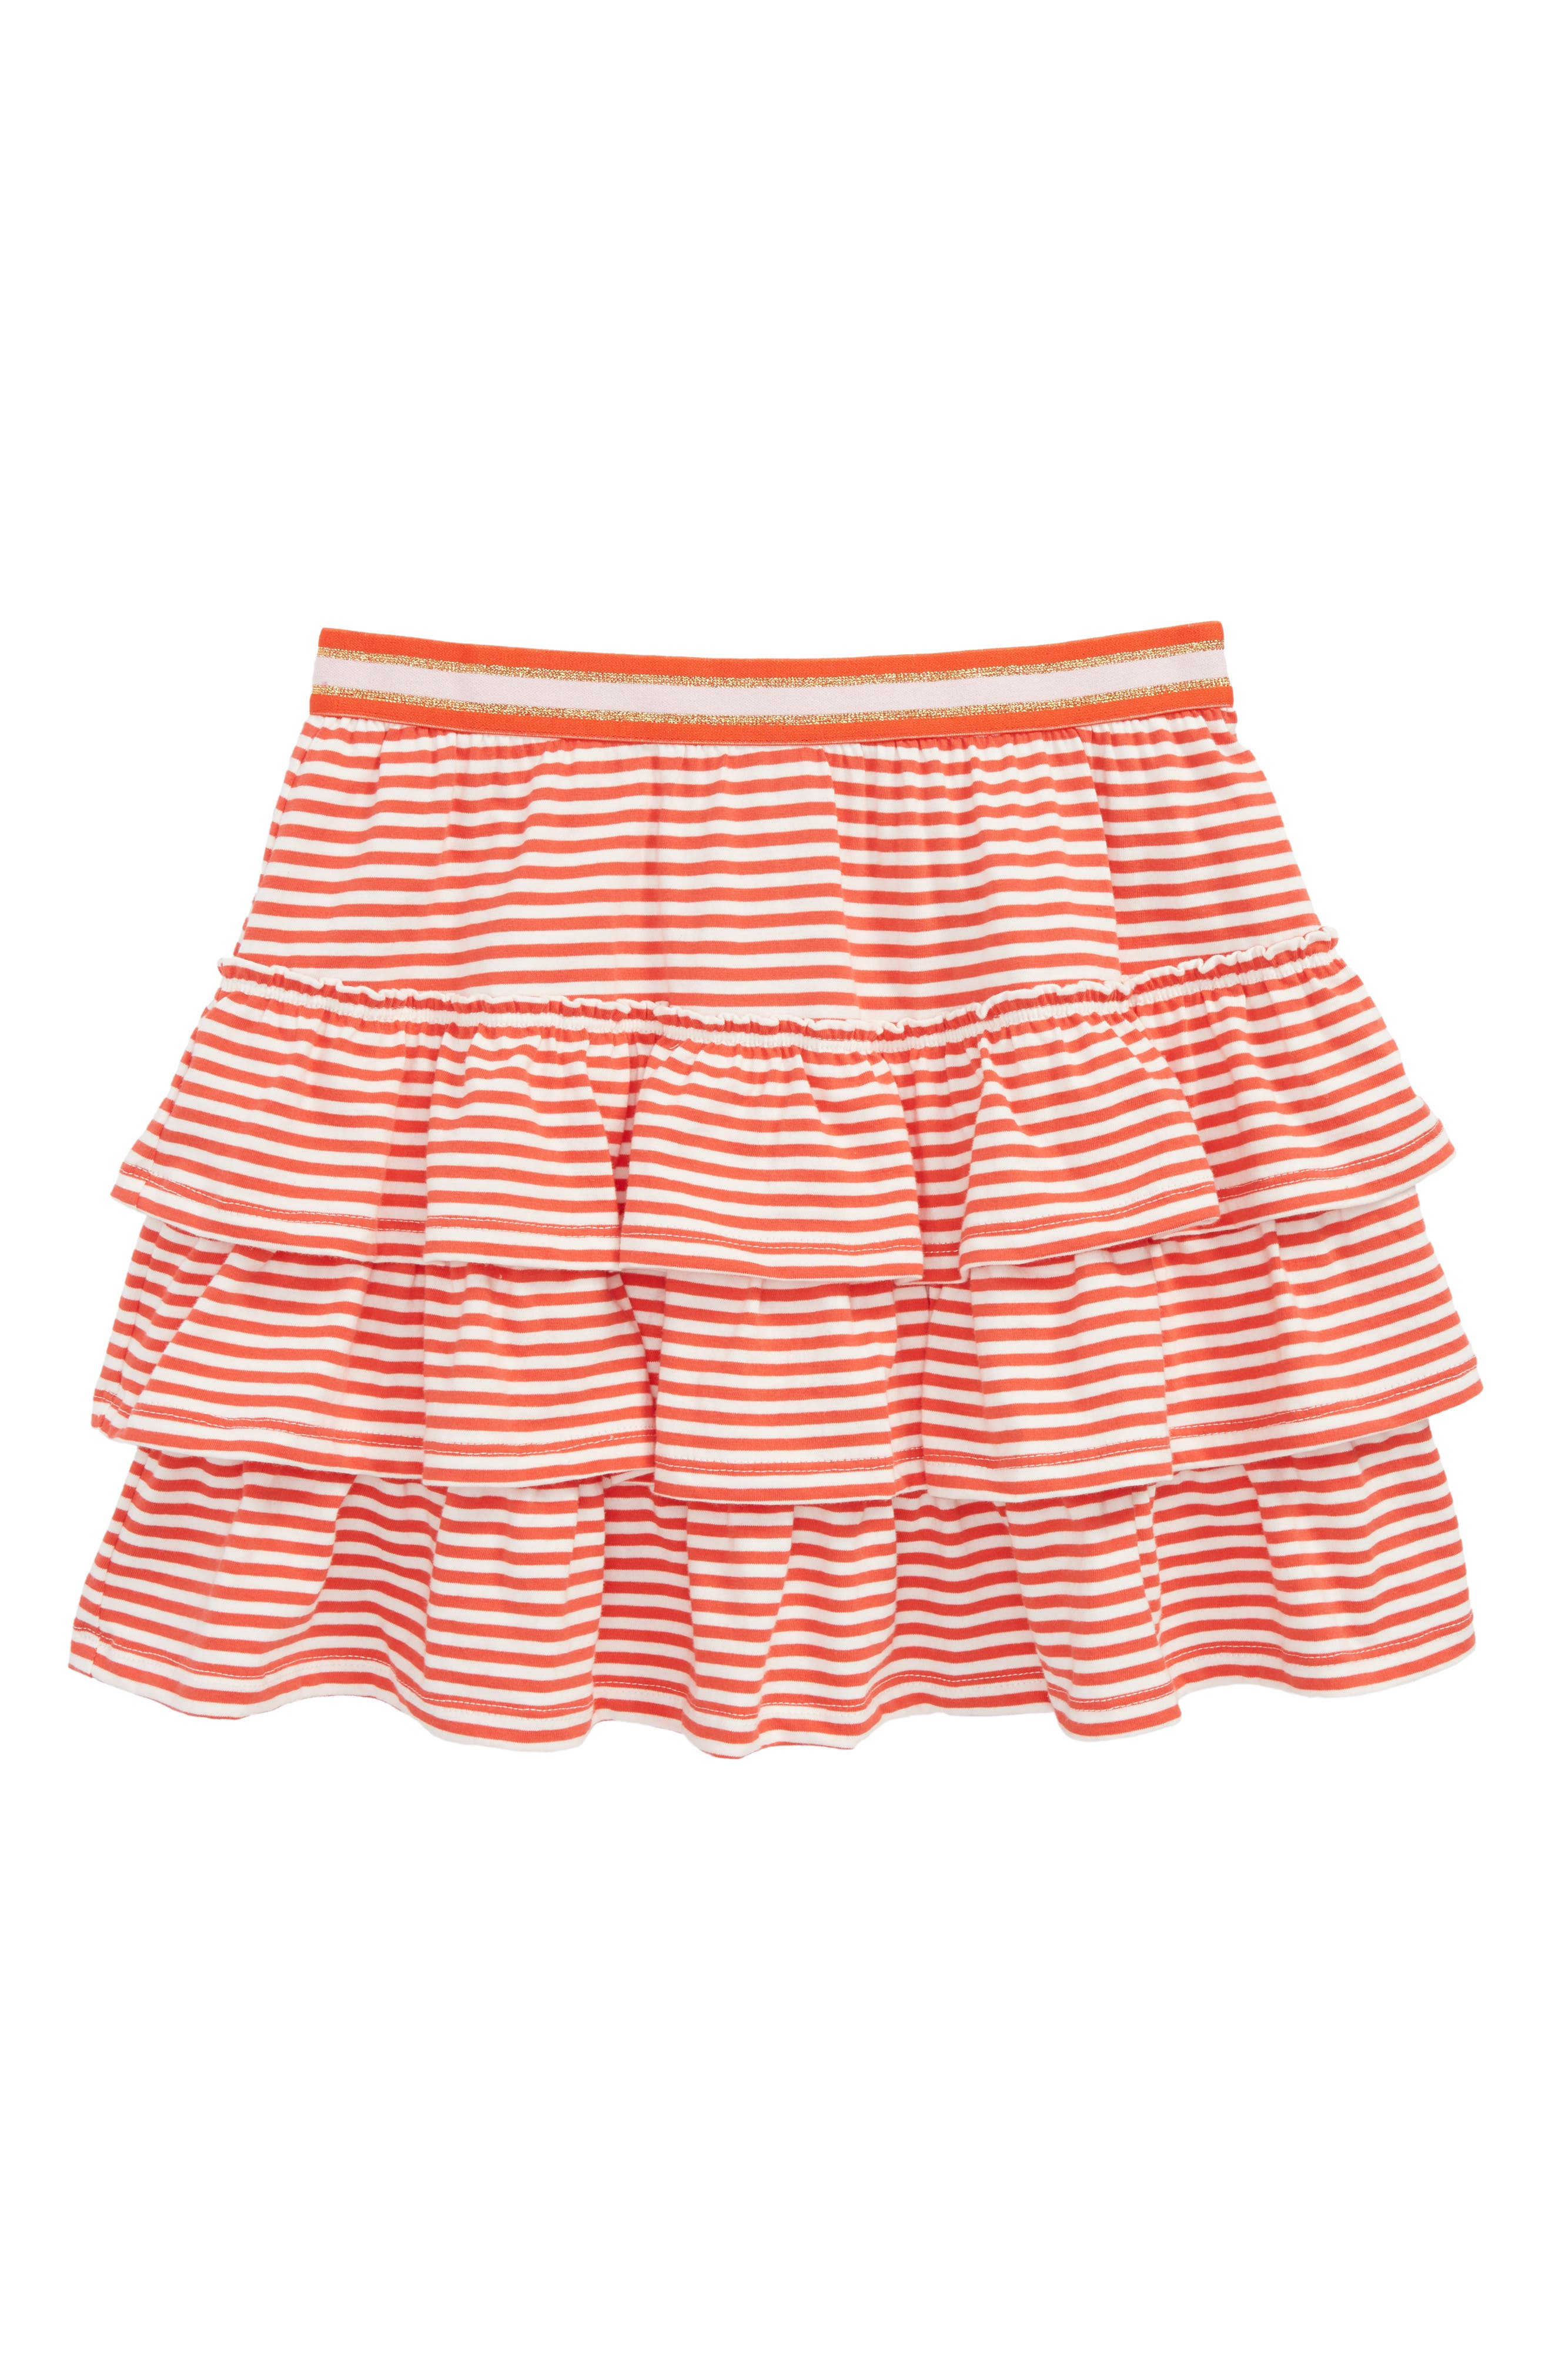 Ruffle Skort,                         Main,                         color, Rosehip Red/ Ivory Red